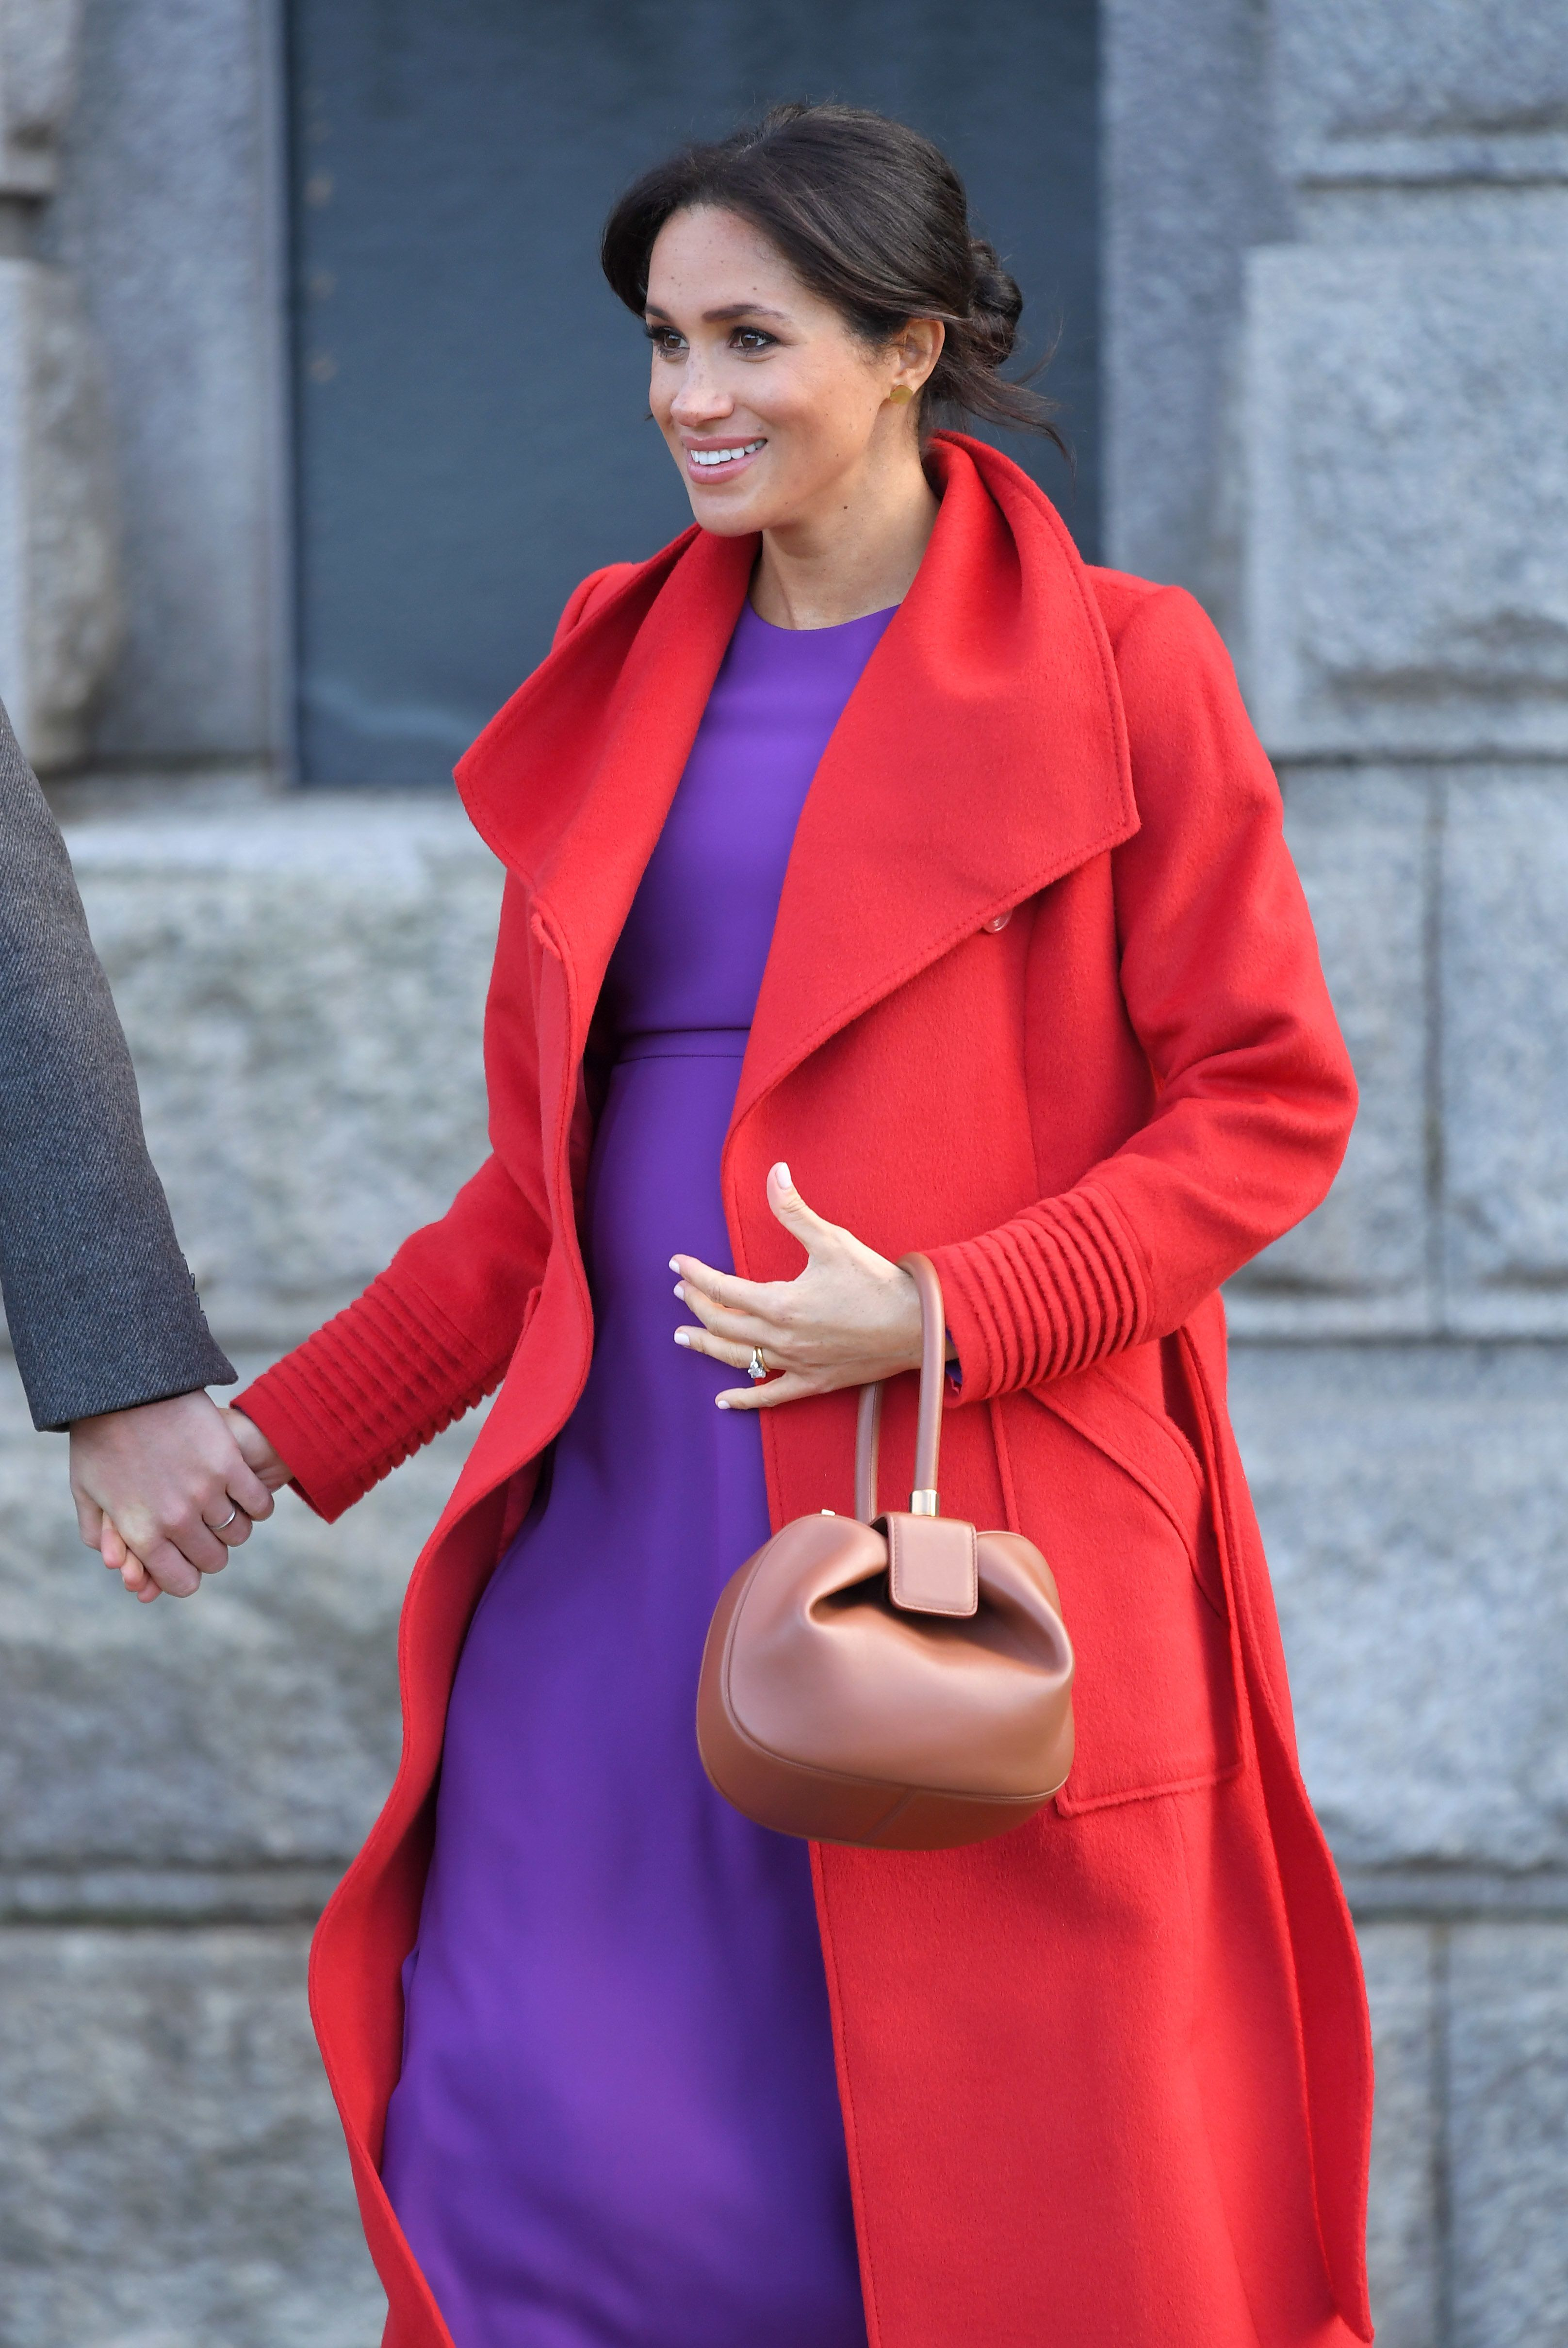 Meghan Markle Just Made A Big Announcement About Her Due